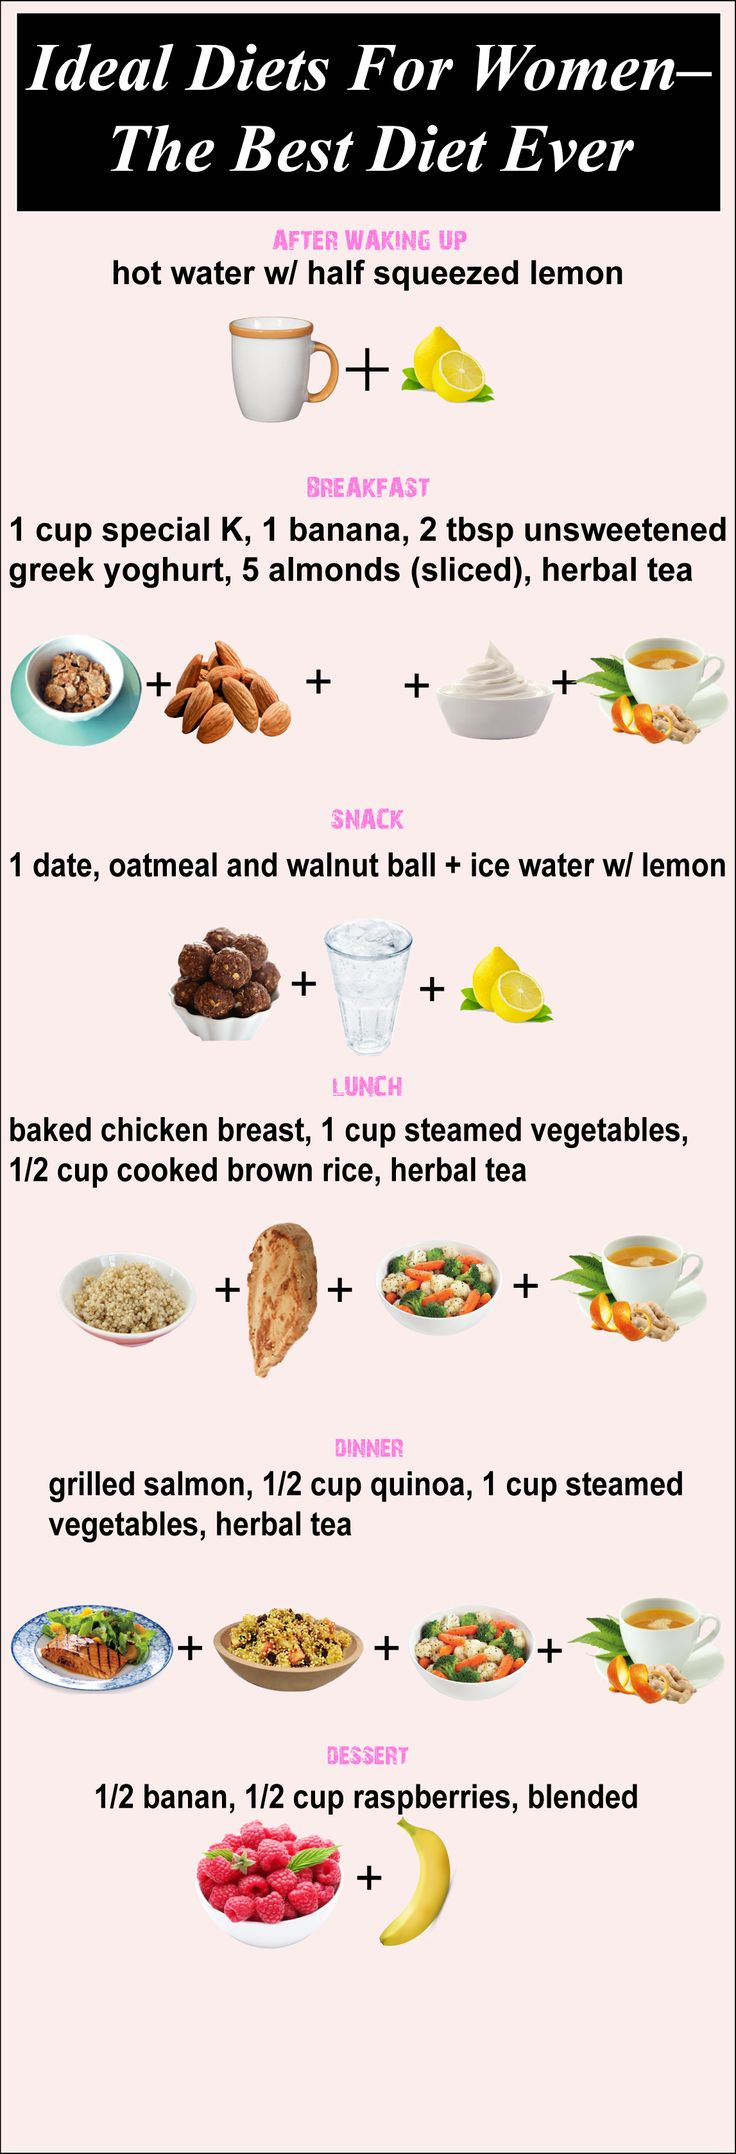 7 foods to reset your body